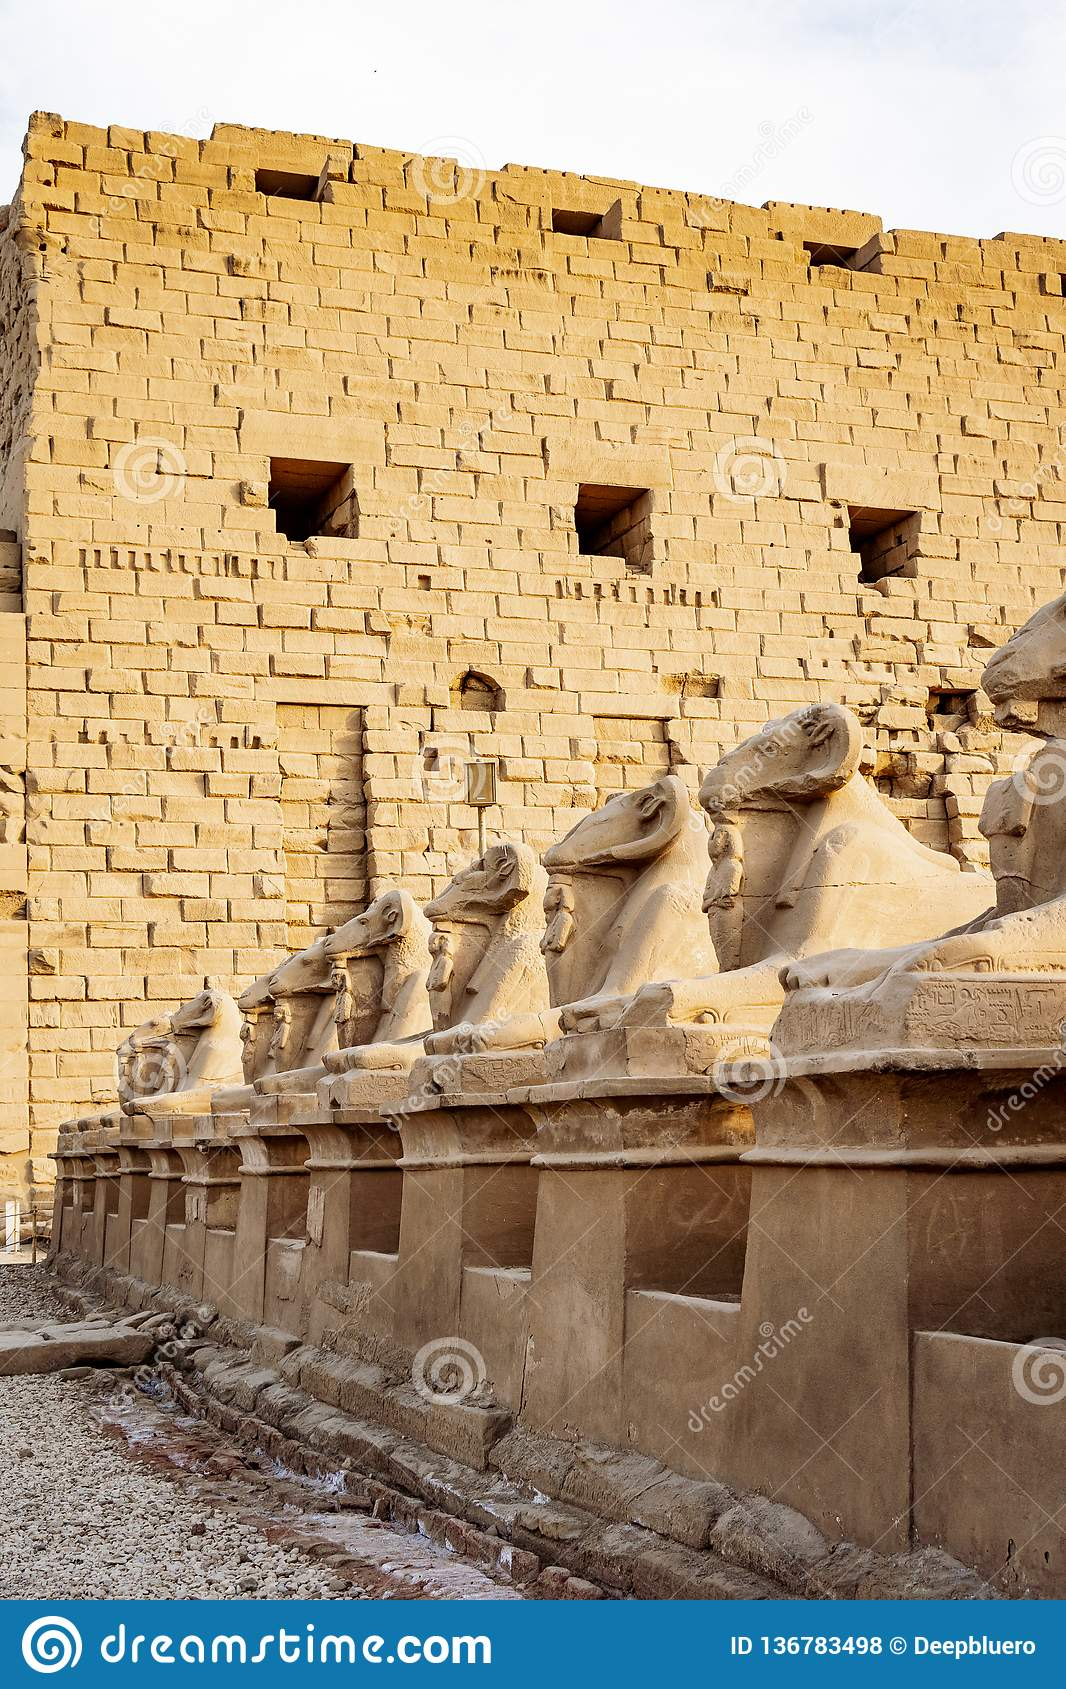 The Road To Karnak Temple With Ram Statues Stock Photo Image Of Religion Egyptian 136783498